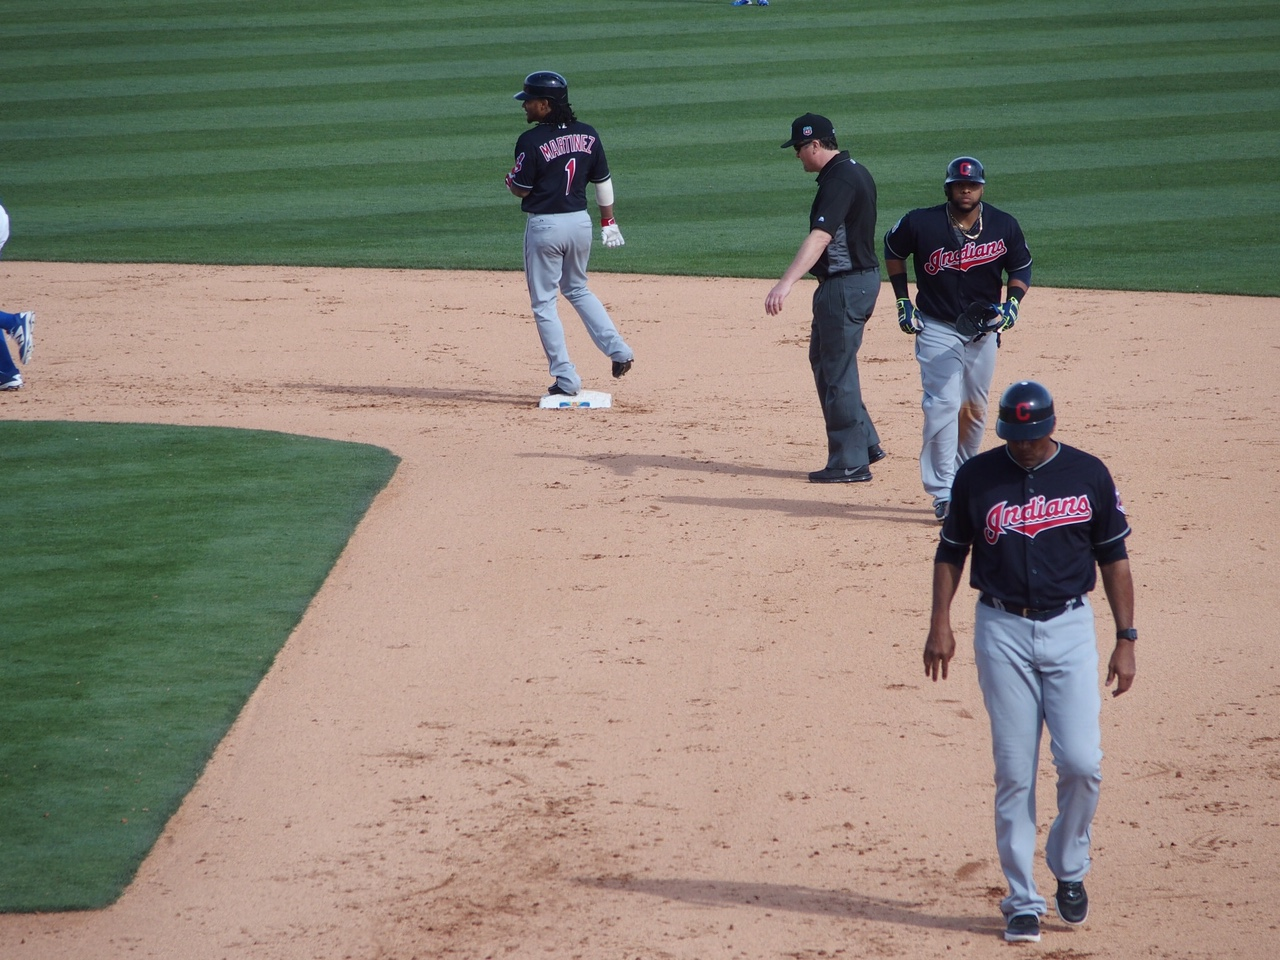 Michael Martinez enters the game as a pinch runner after Carlos Santana doubled in Tuesday's game against the Dodgers.